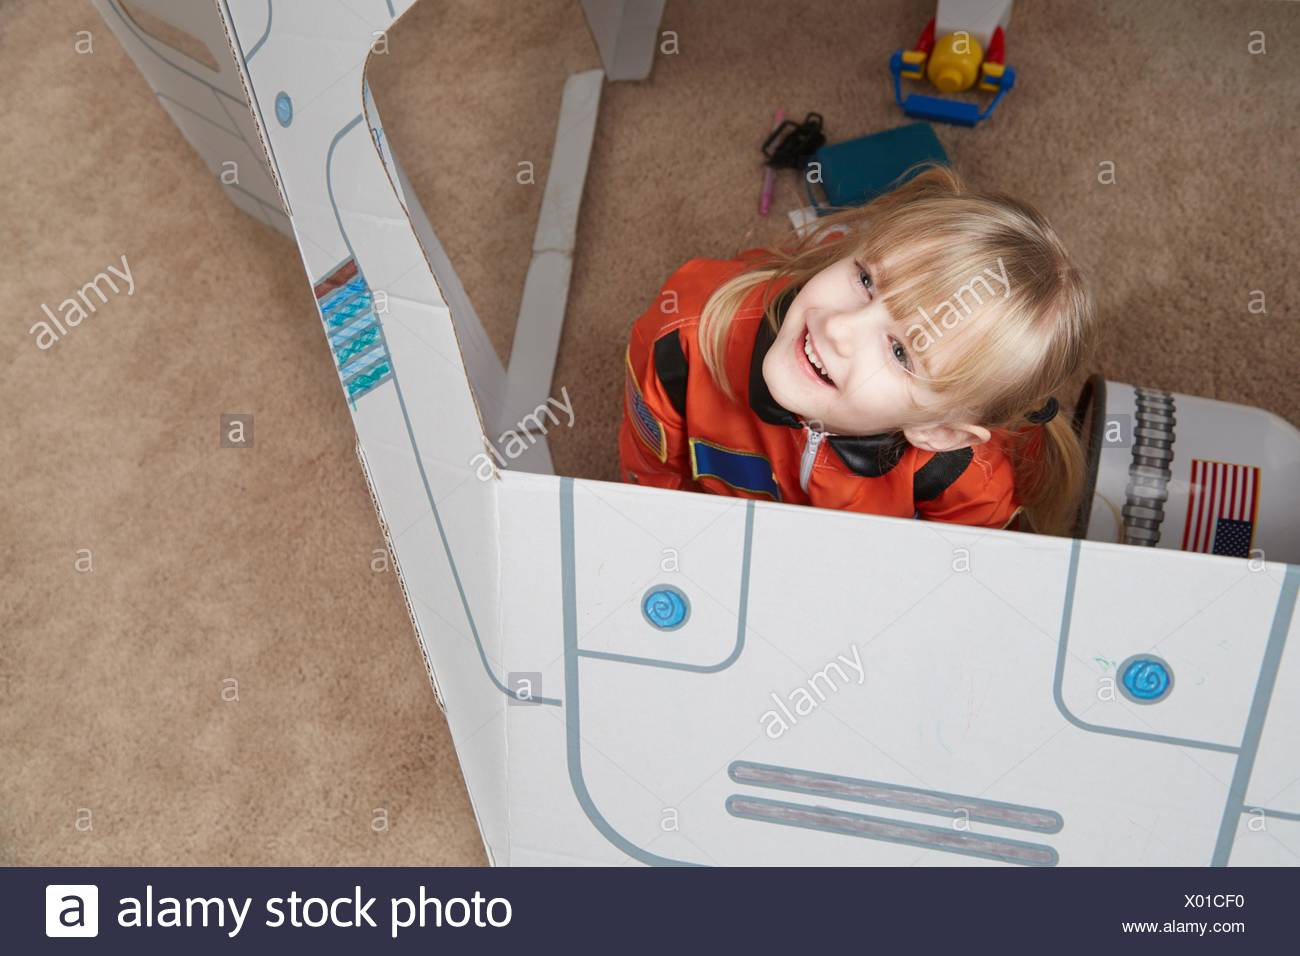 Young girl playing in cardboard spaceship, wearing astronaut outfit, elevated view - Stock Image